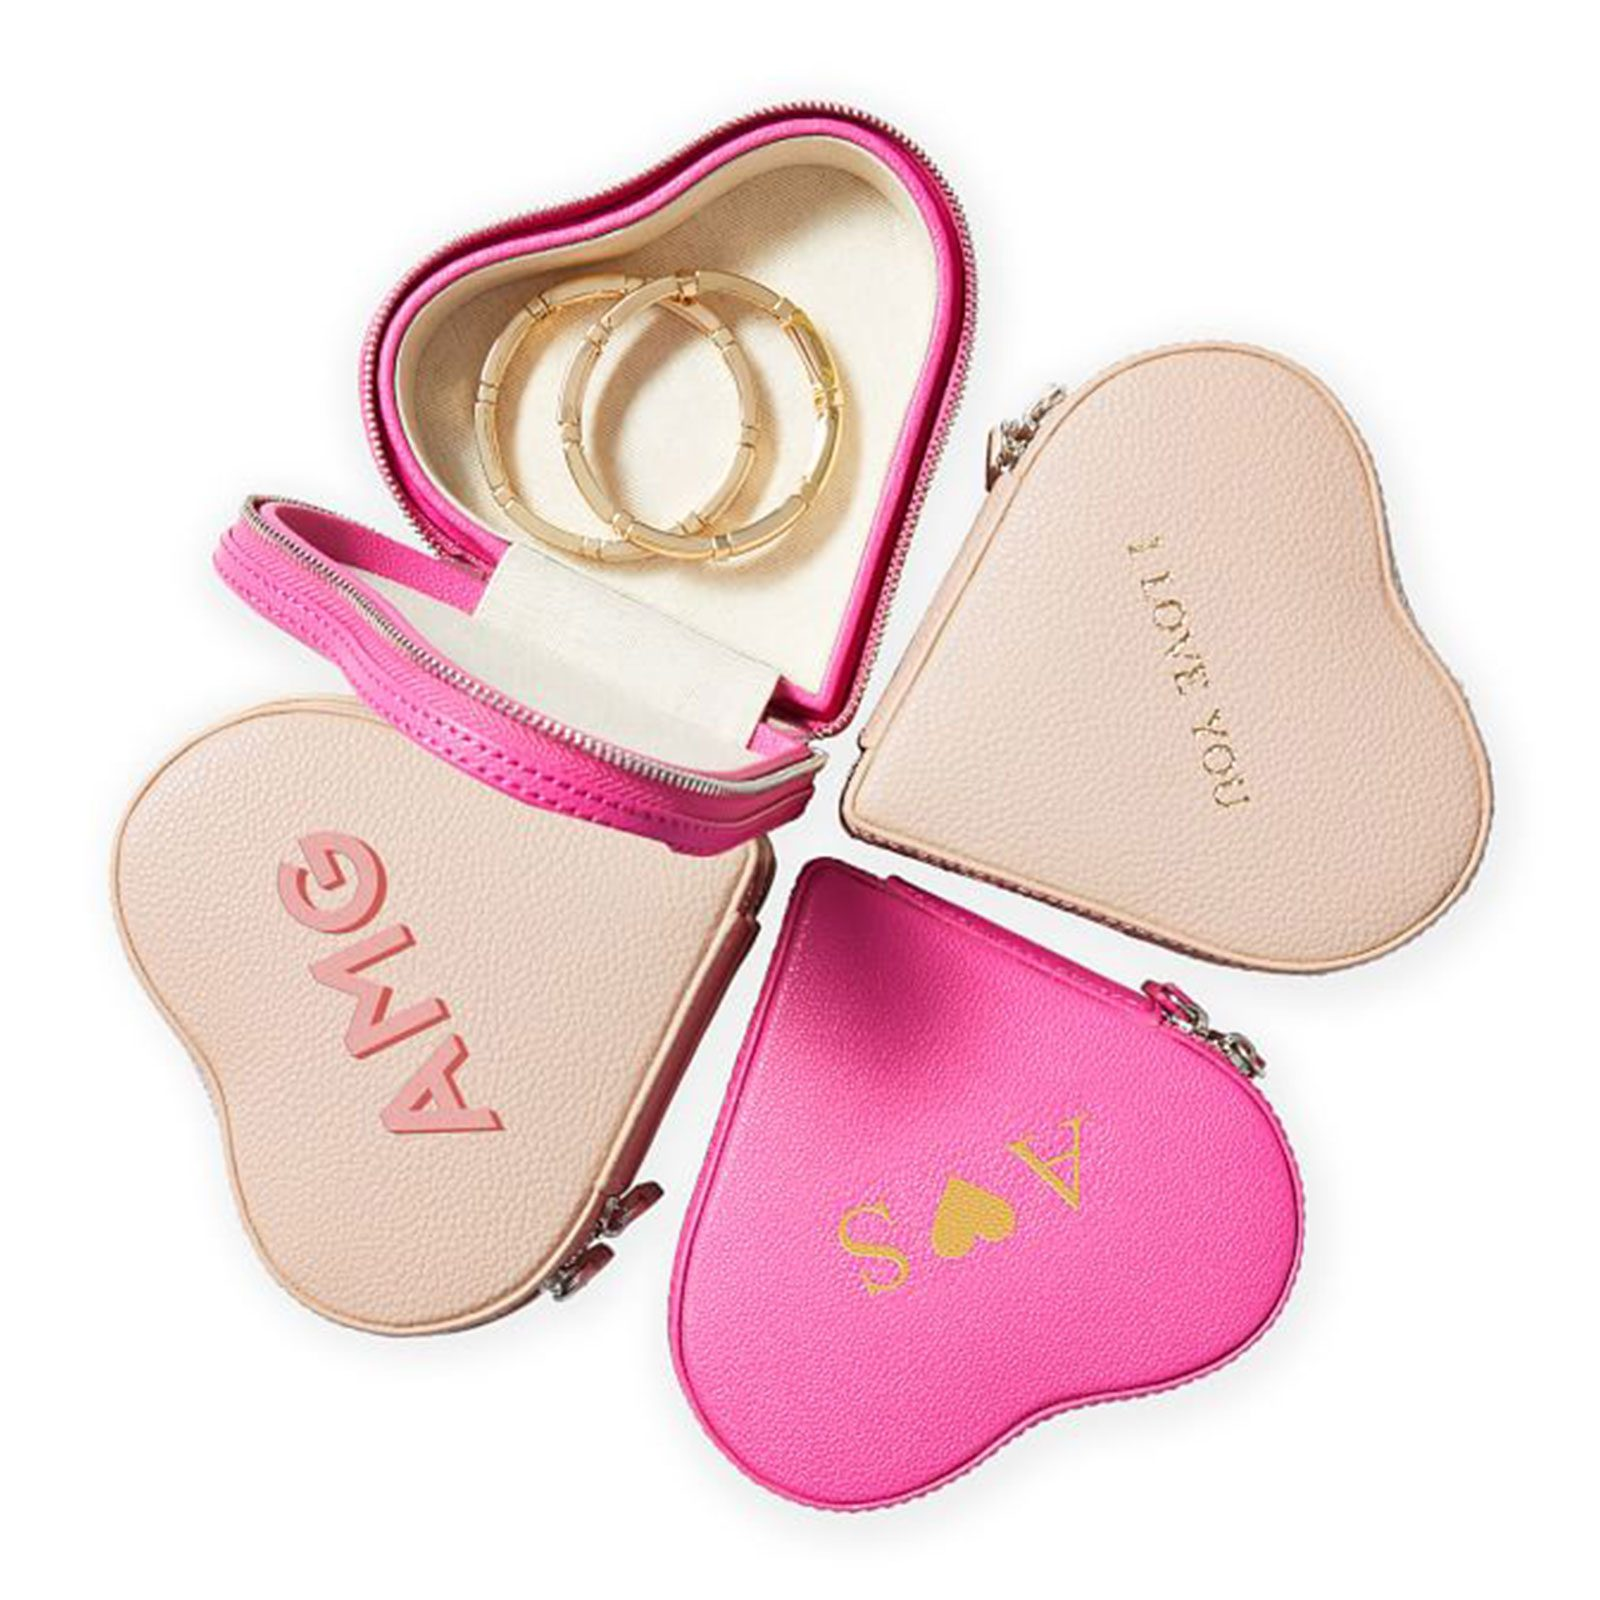 For the well-accessorized: Mark & Graham Heart Jewelry Case